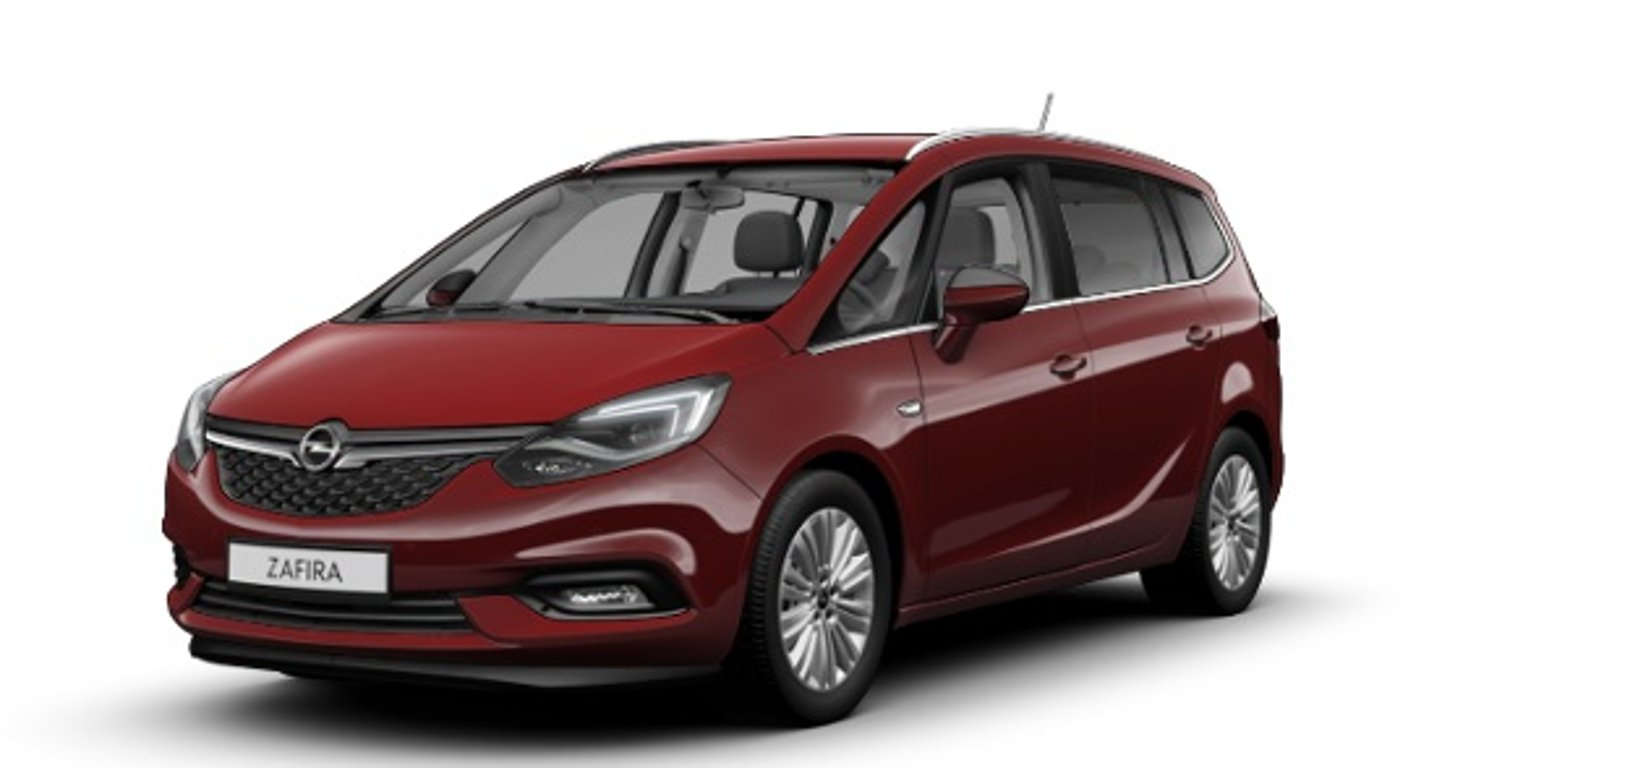 Opel Zafira Innovation 1.4 T 130kW